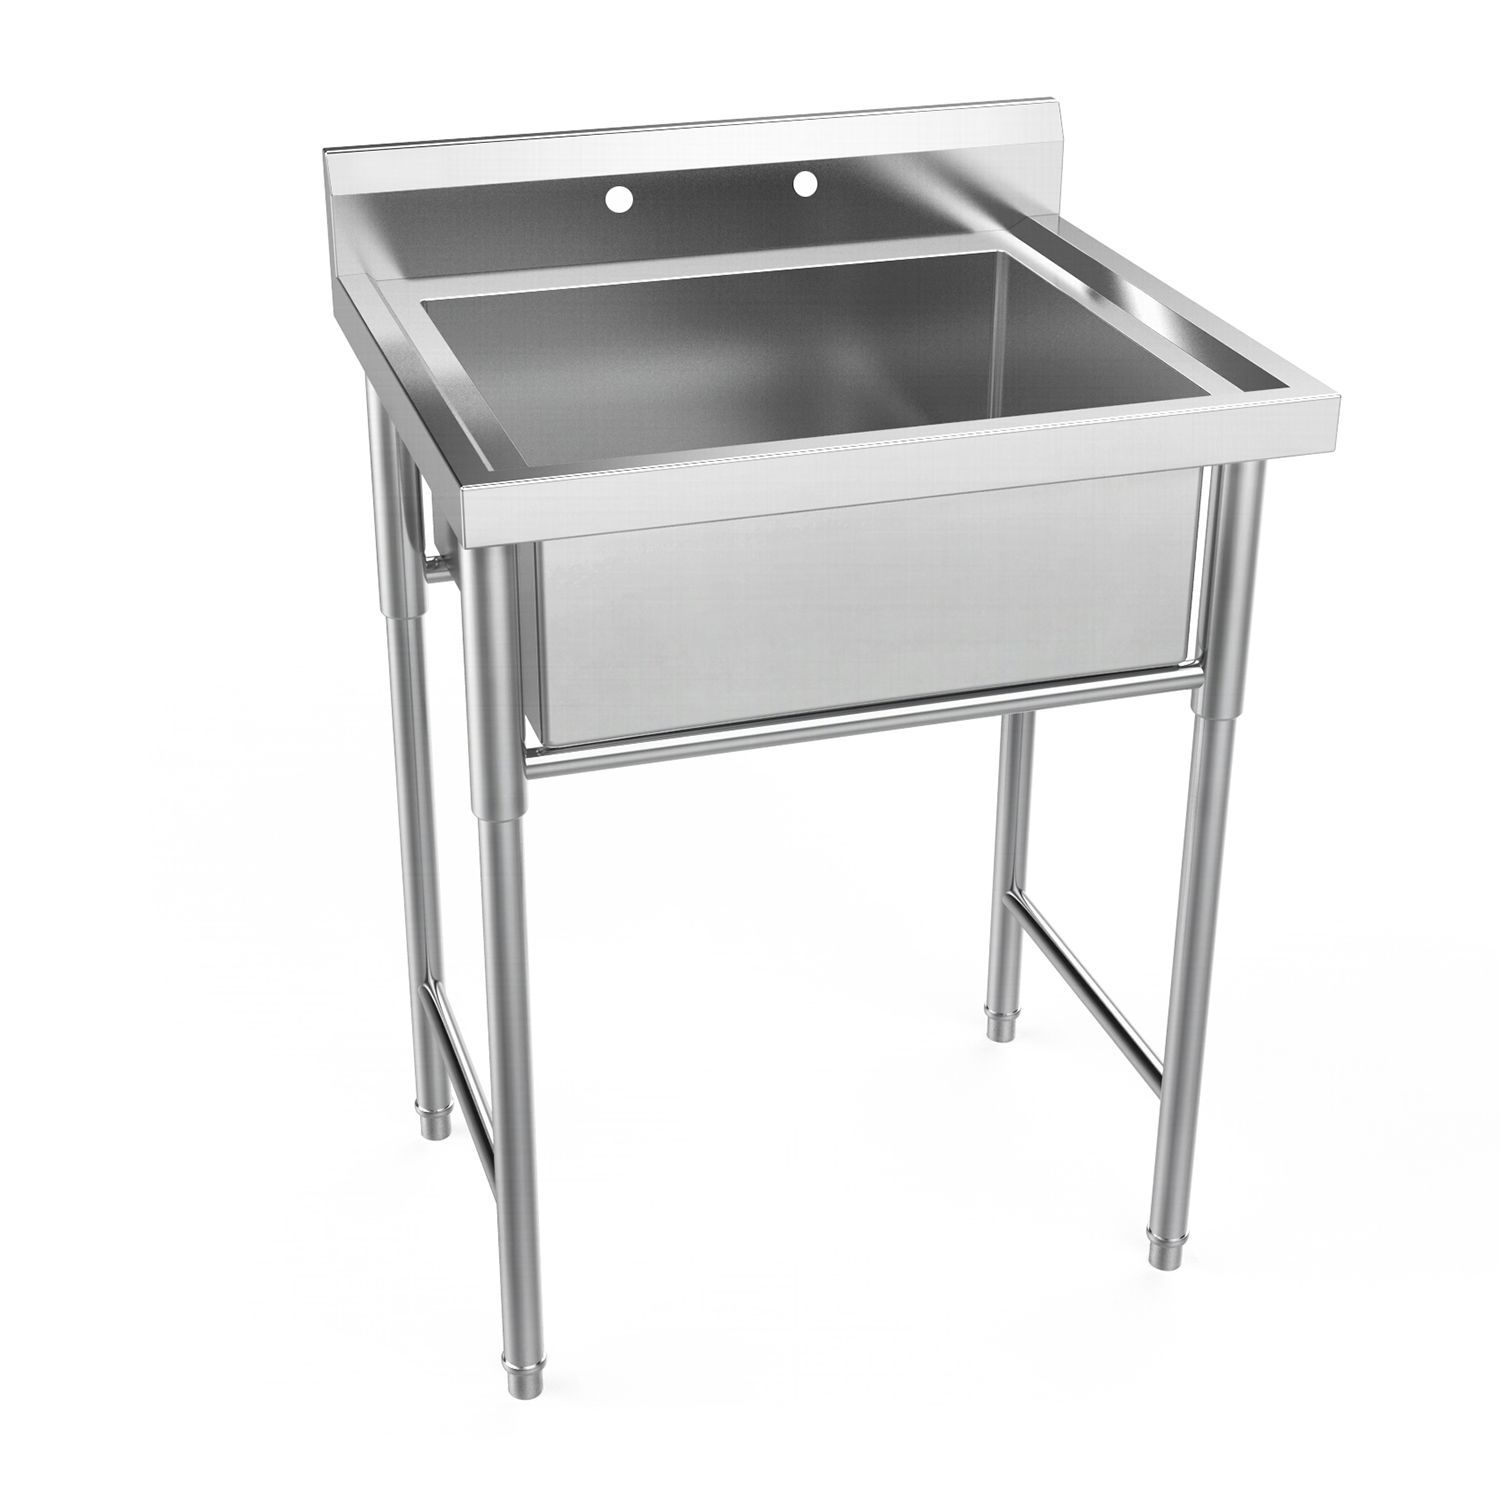 Ubesgoo 30 Wide Commercial Grade Stainless Steel Utility Sink